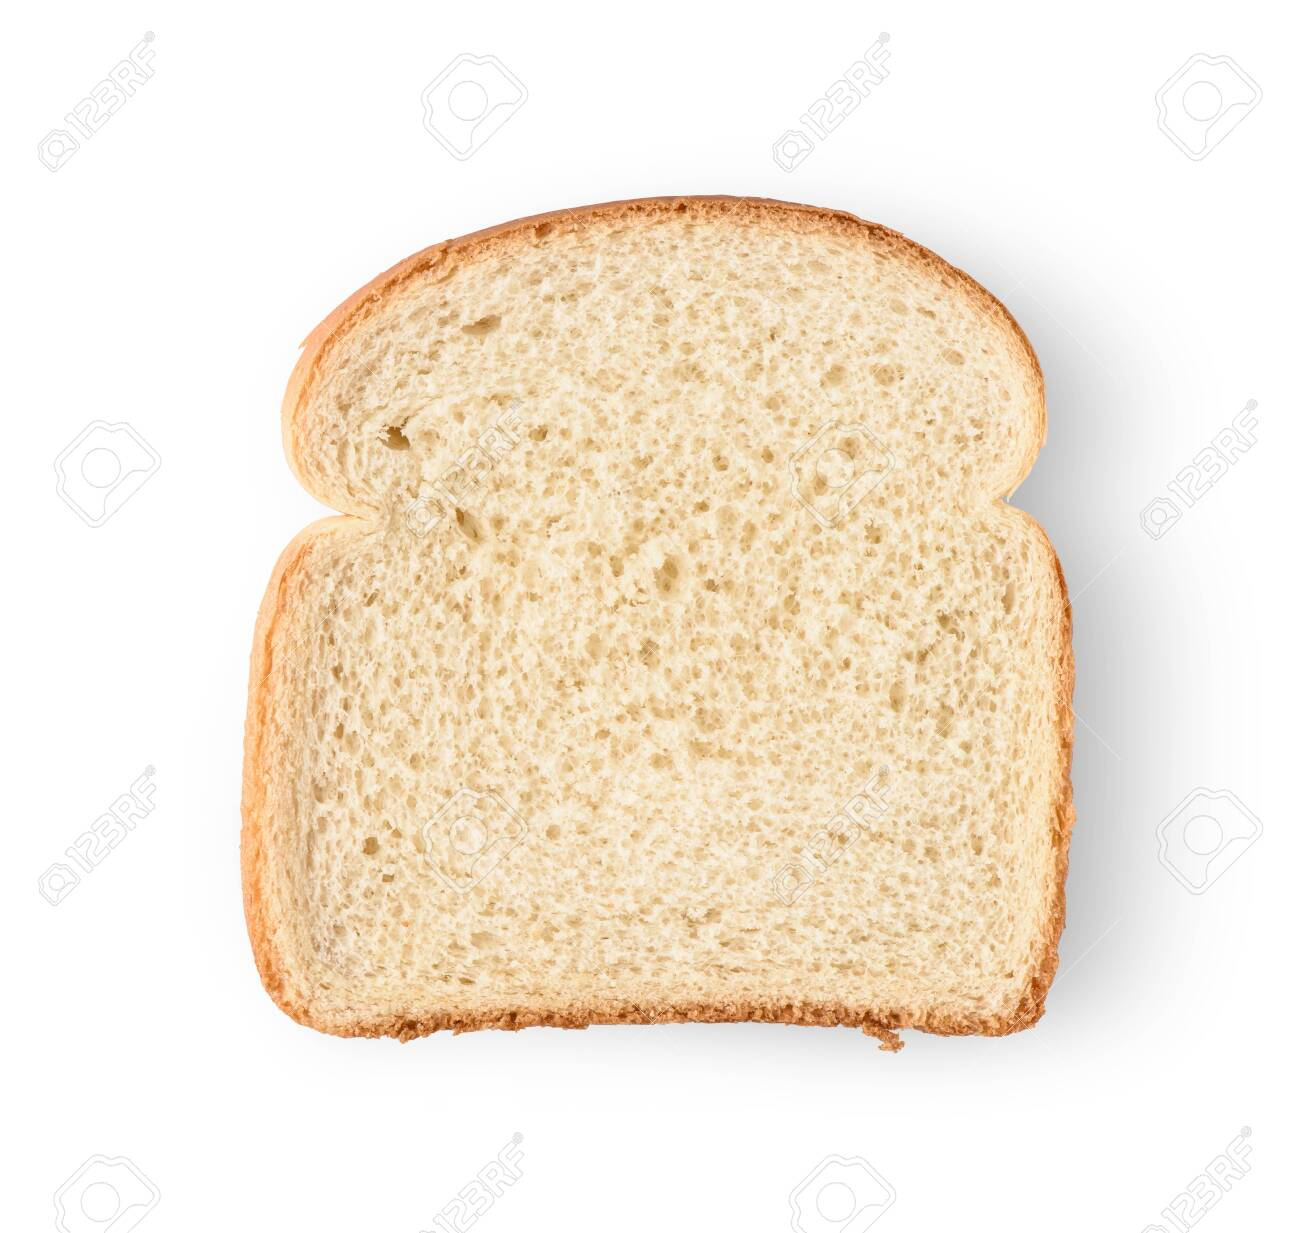 One slice of bread isolated on white background. - 124630786